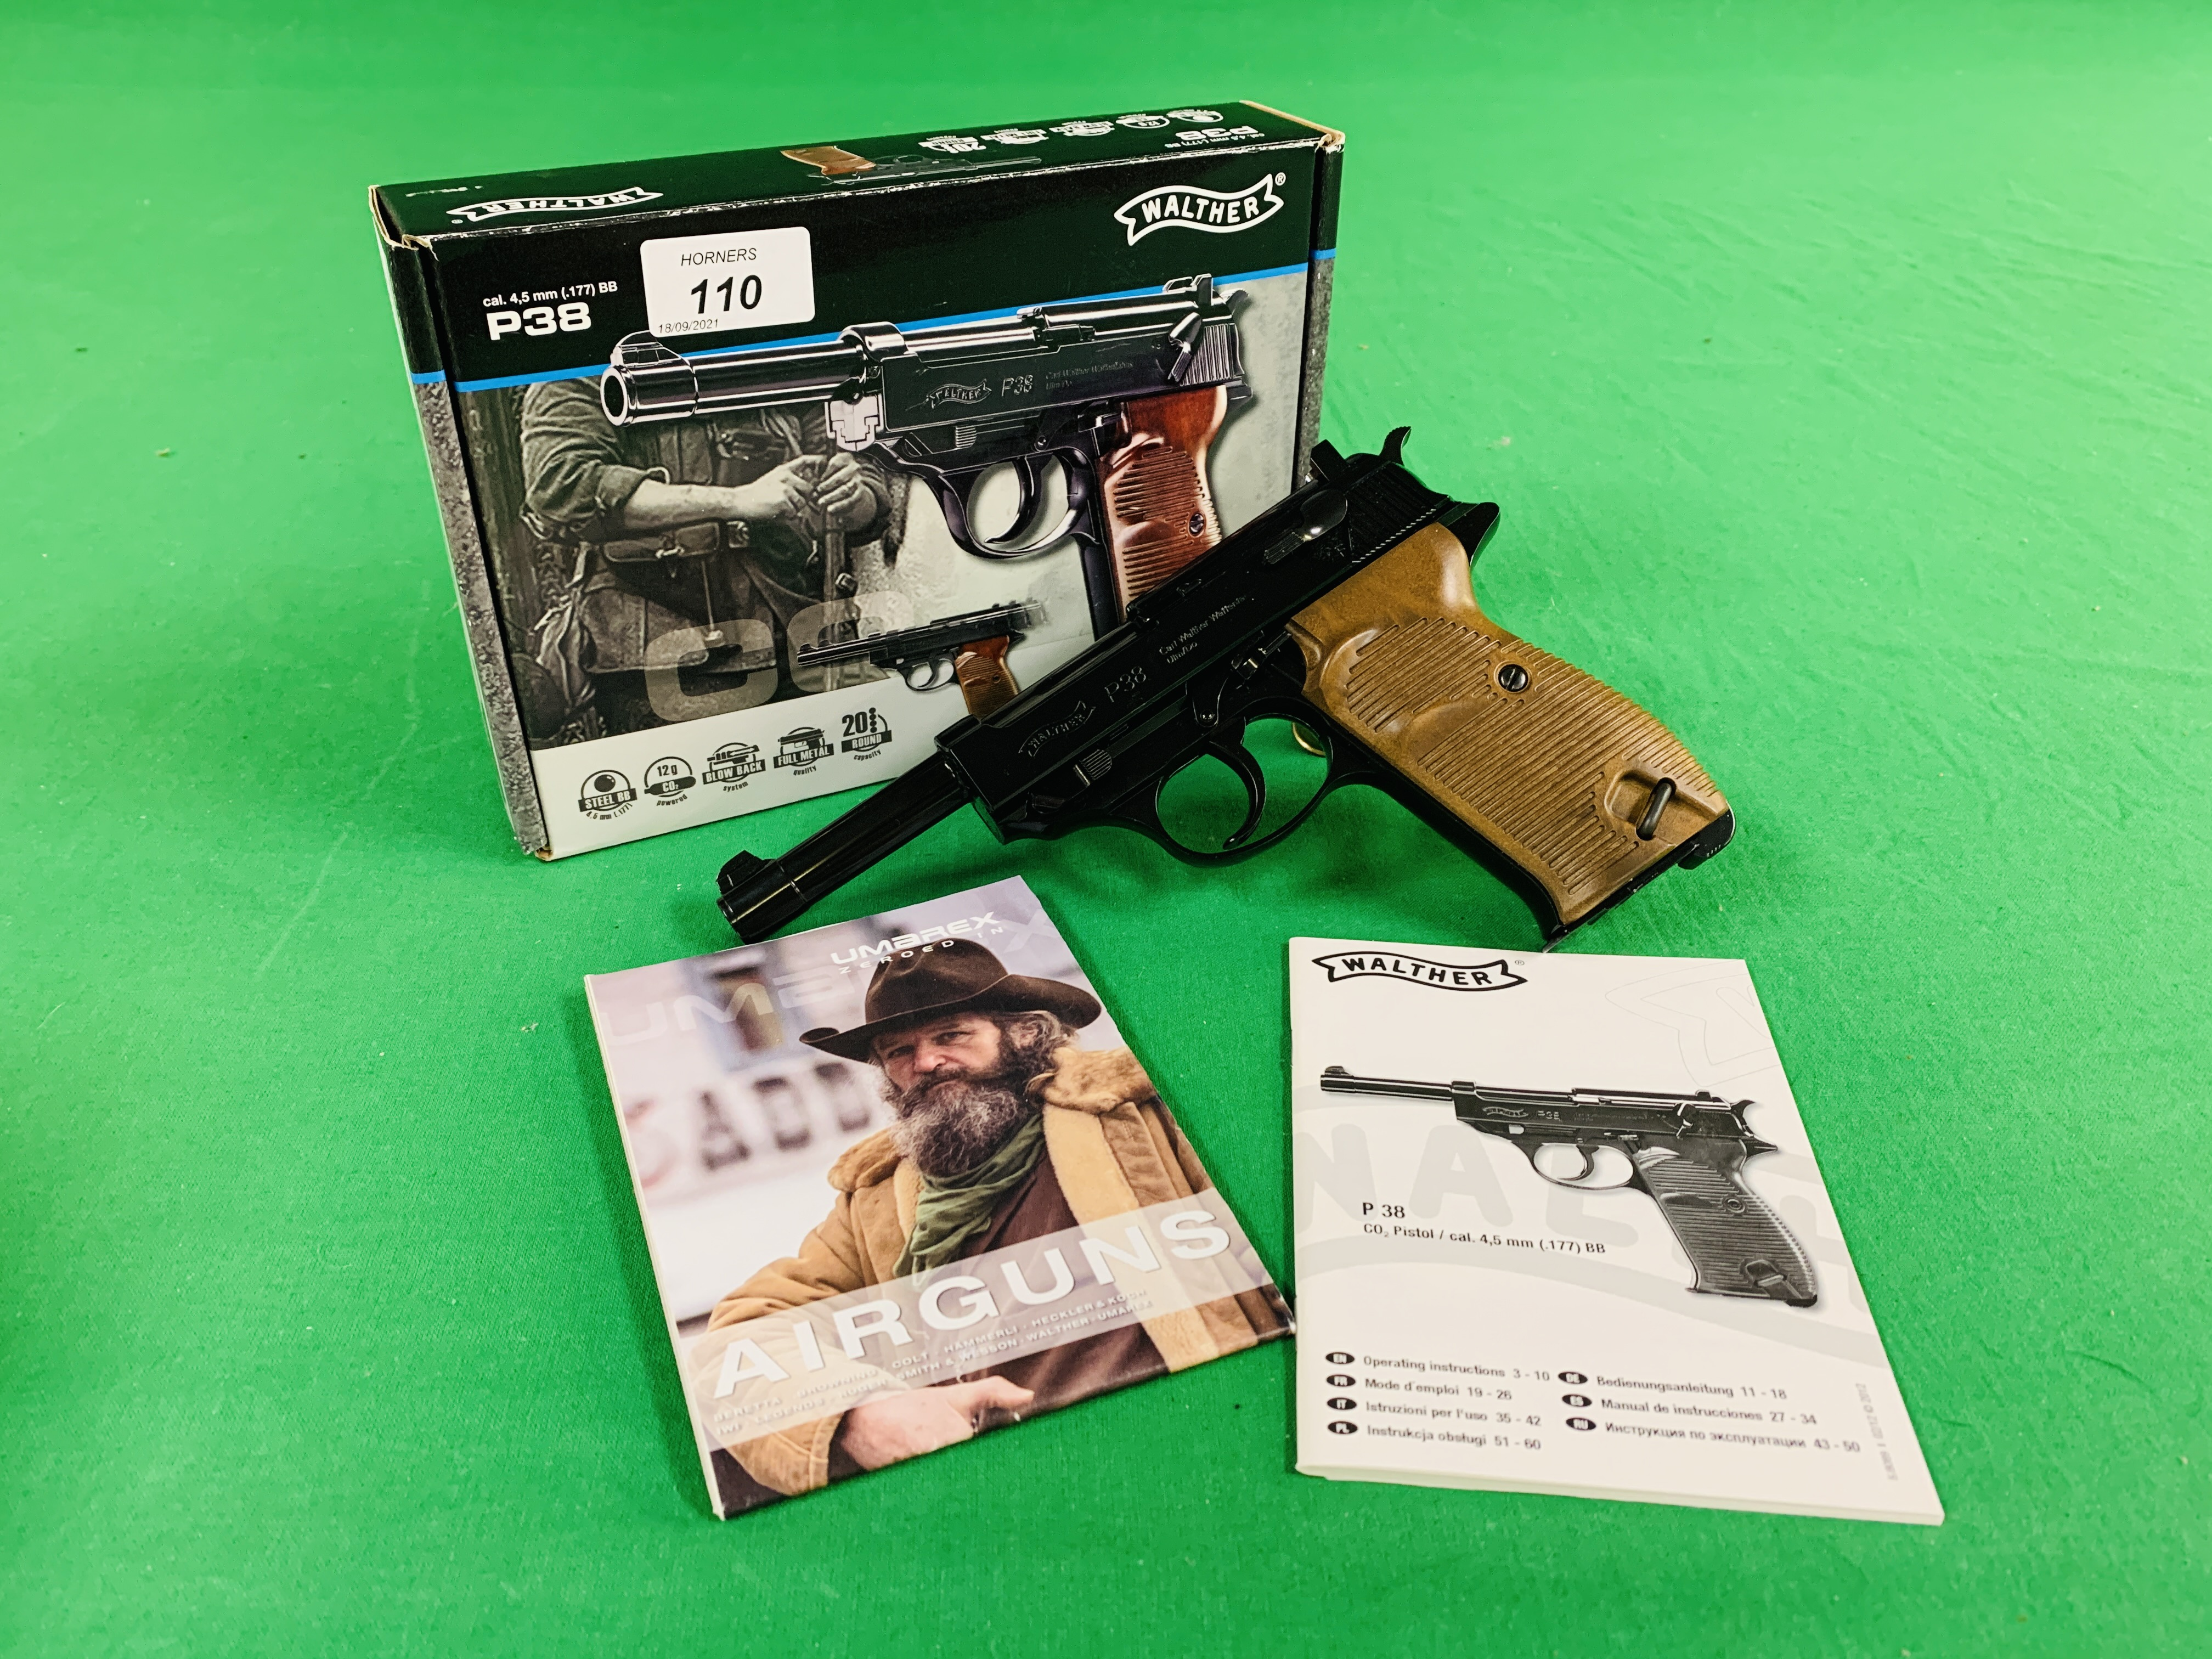 A WALTHER P38 .